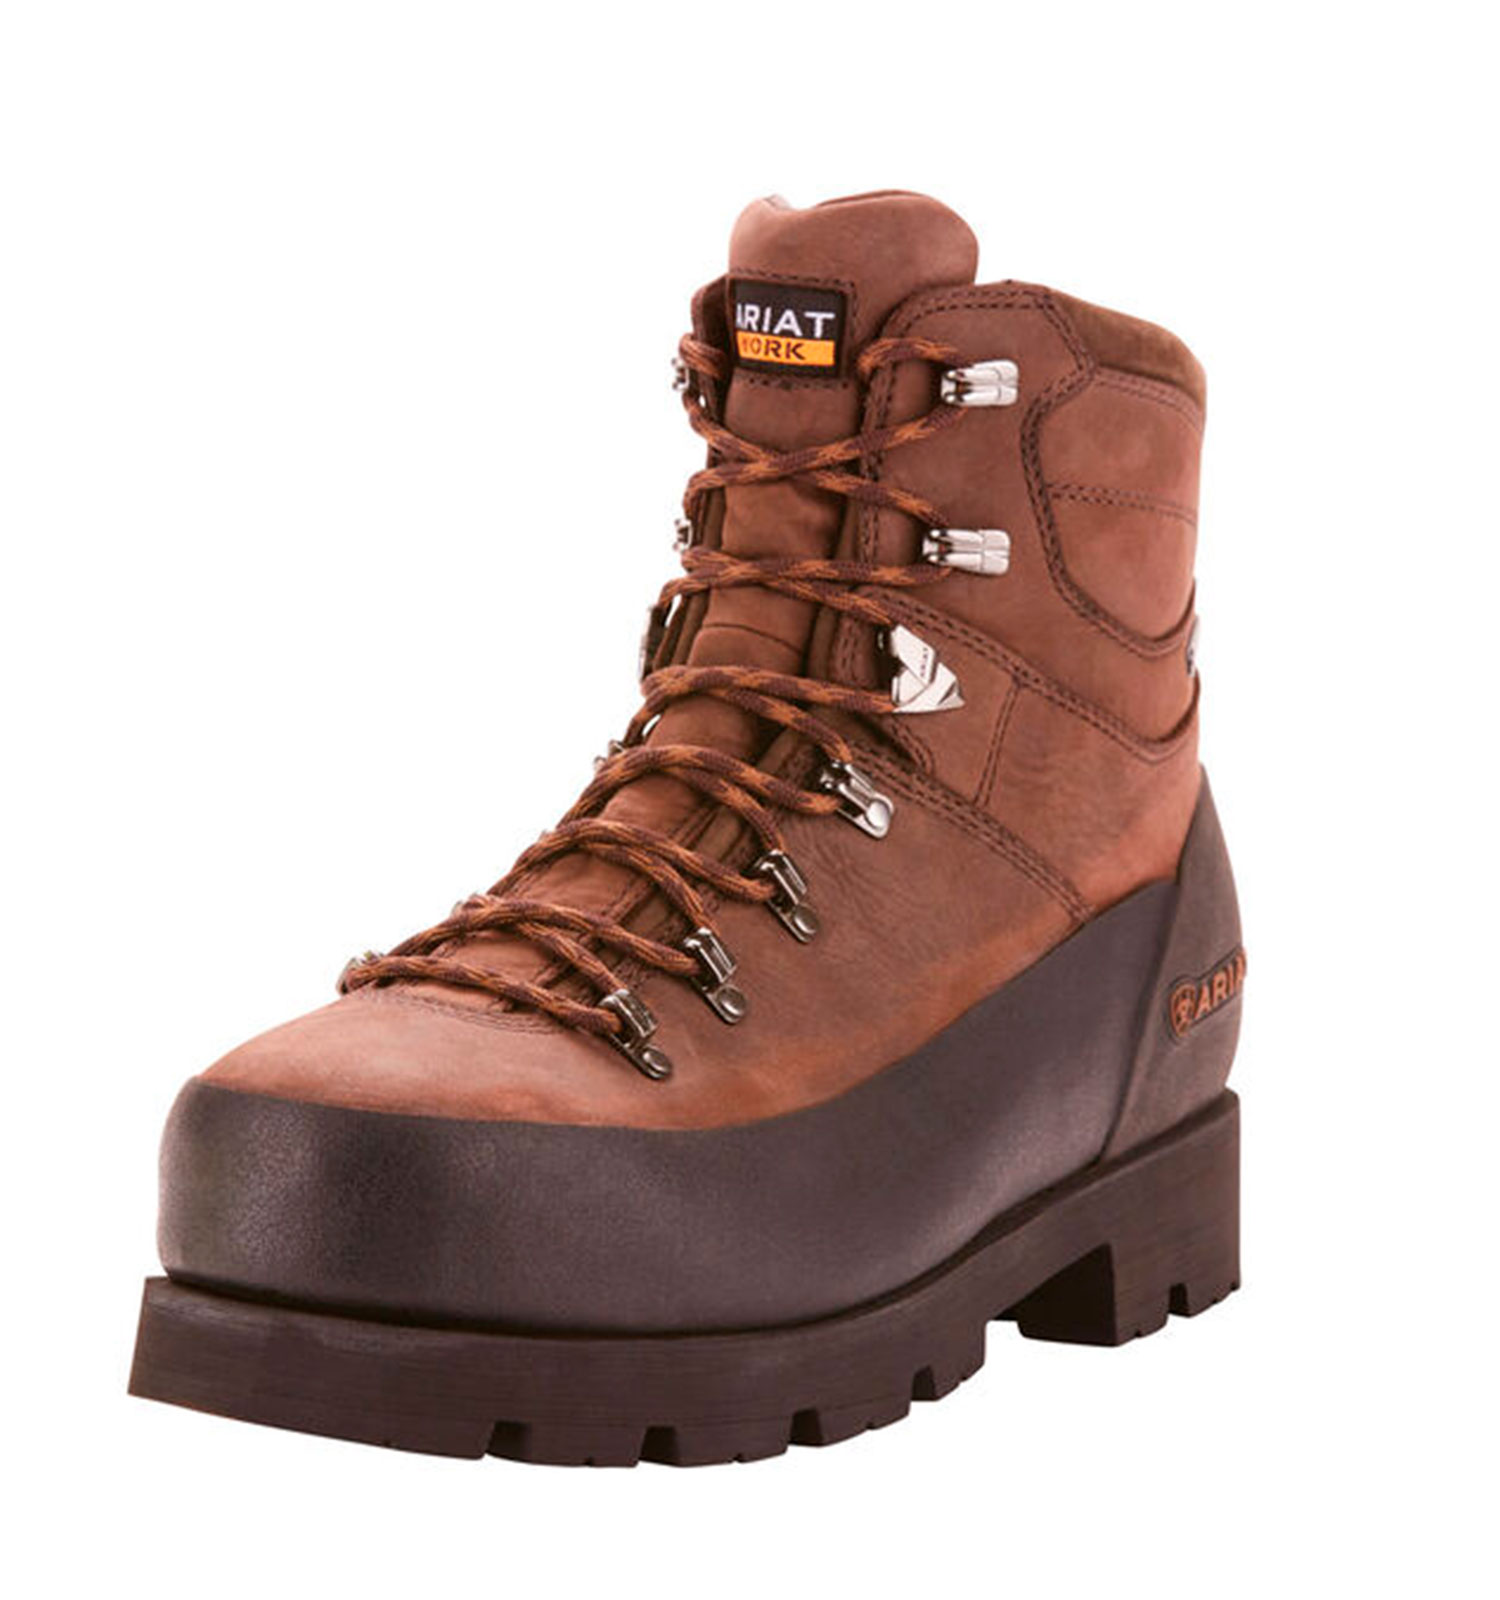 Ariat-Linesman-Ridge-6-Gore-Tex-400g-Composite-Toe-Work-Boot